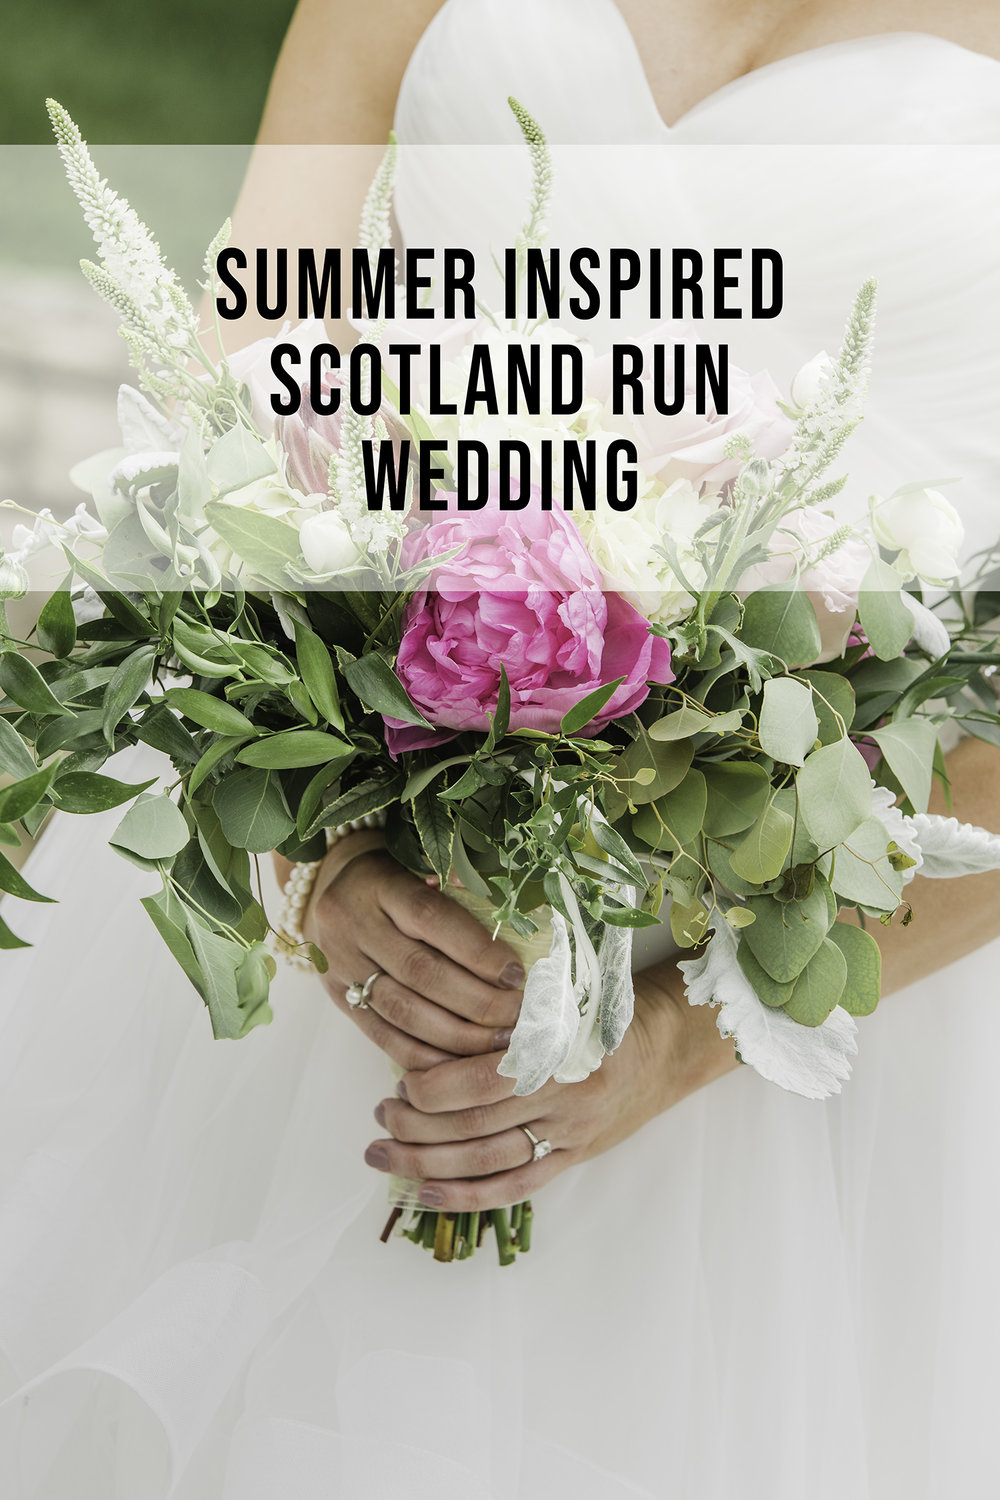 summer wedding at Scotland Run